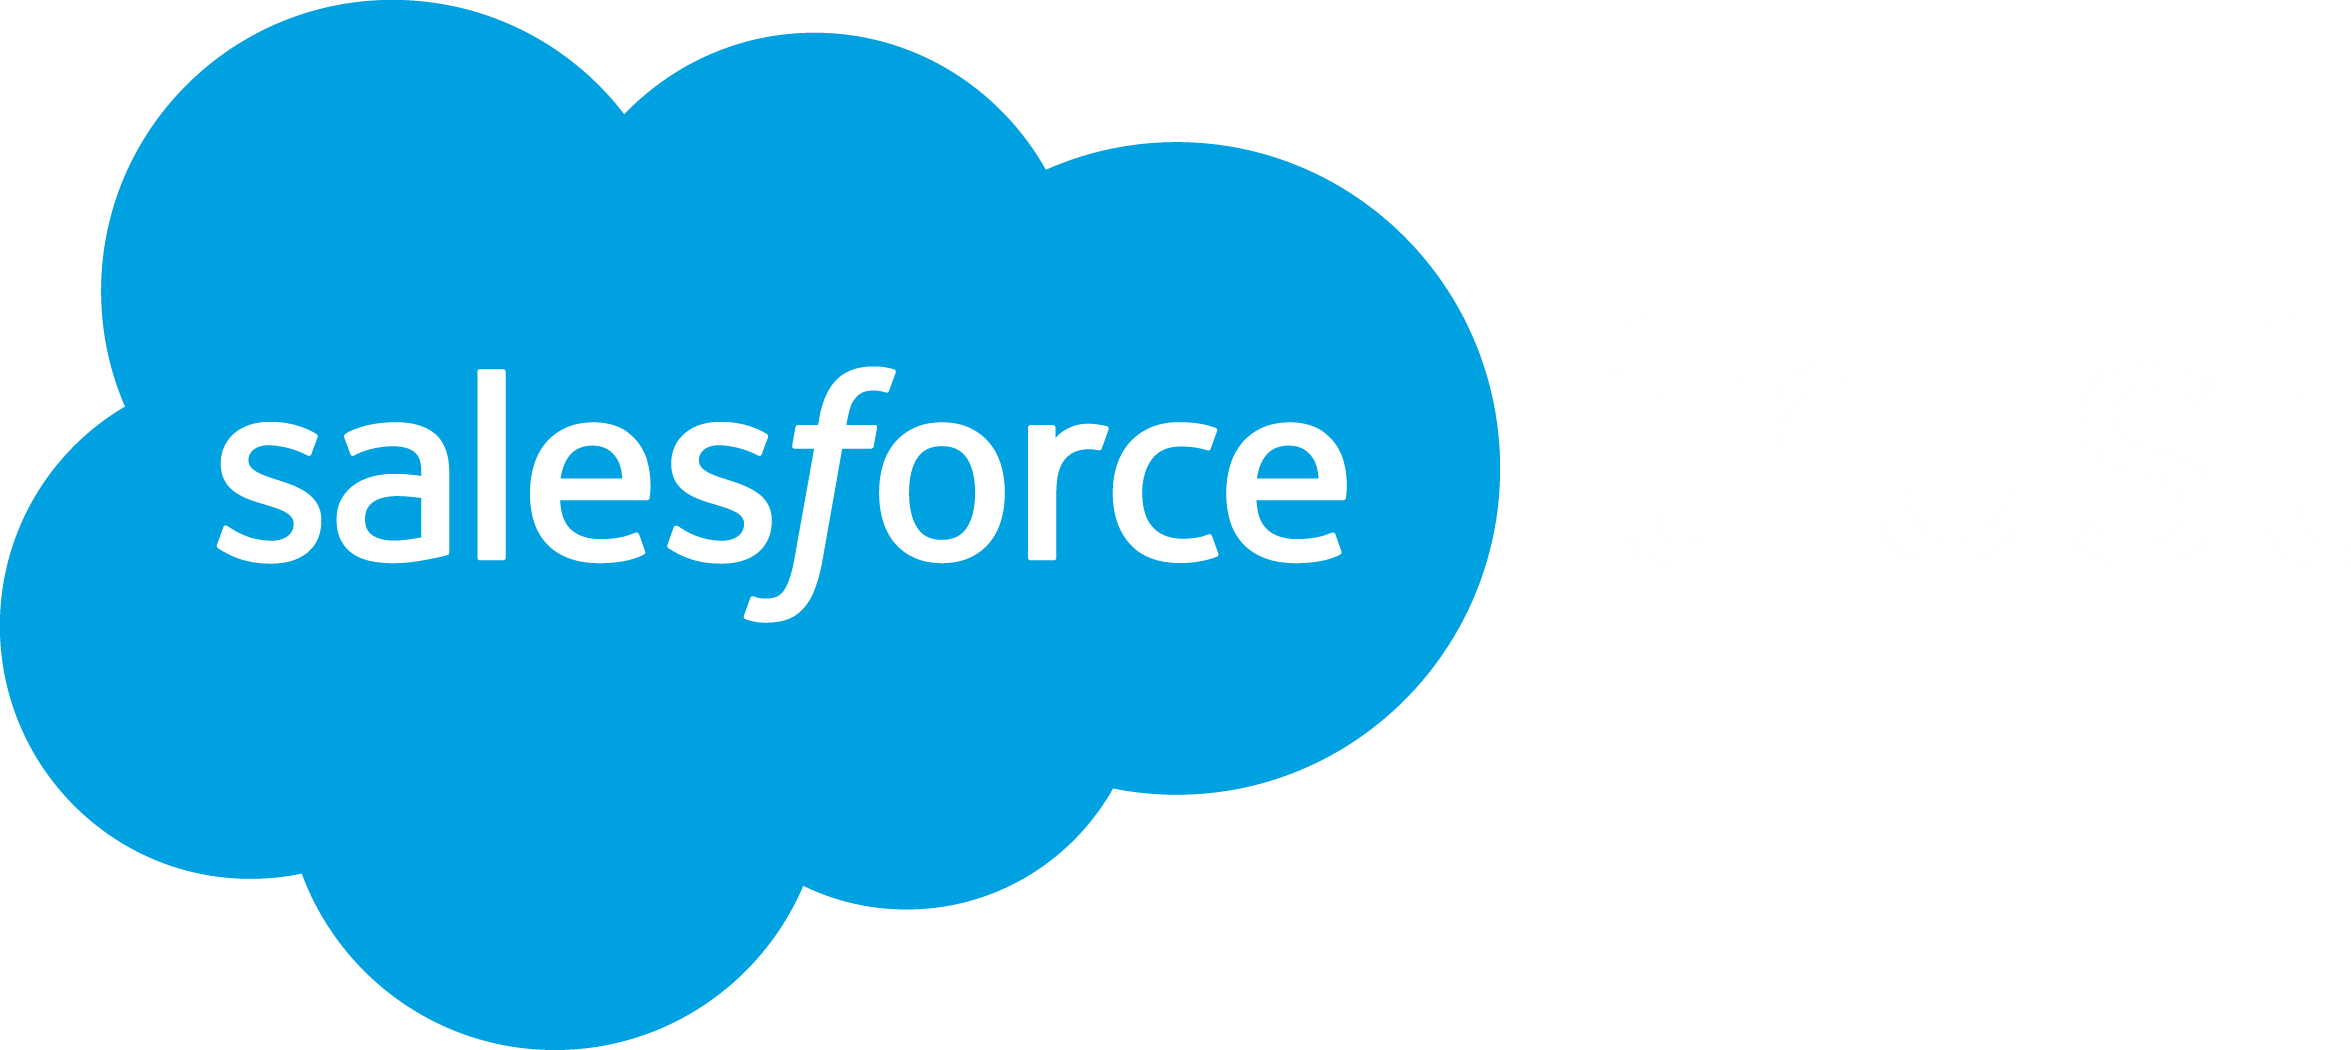 A Salesforce logo